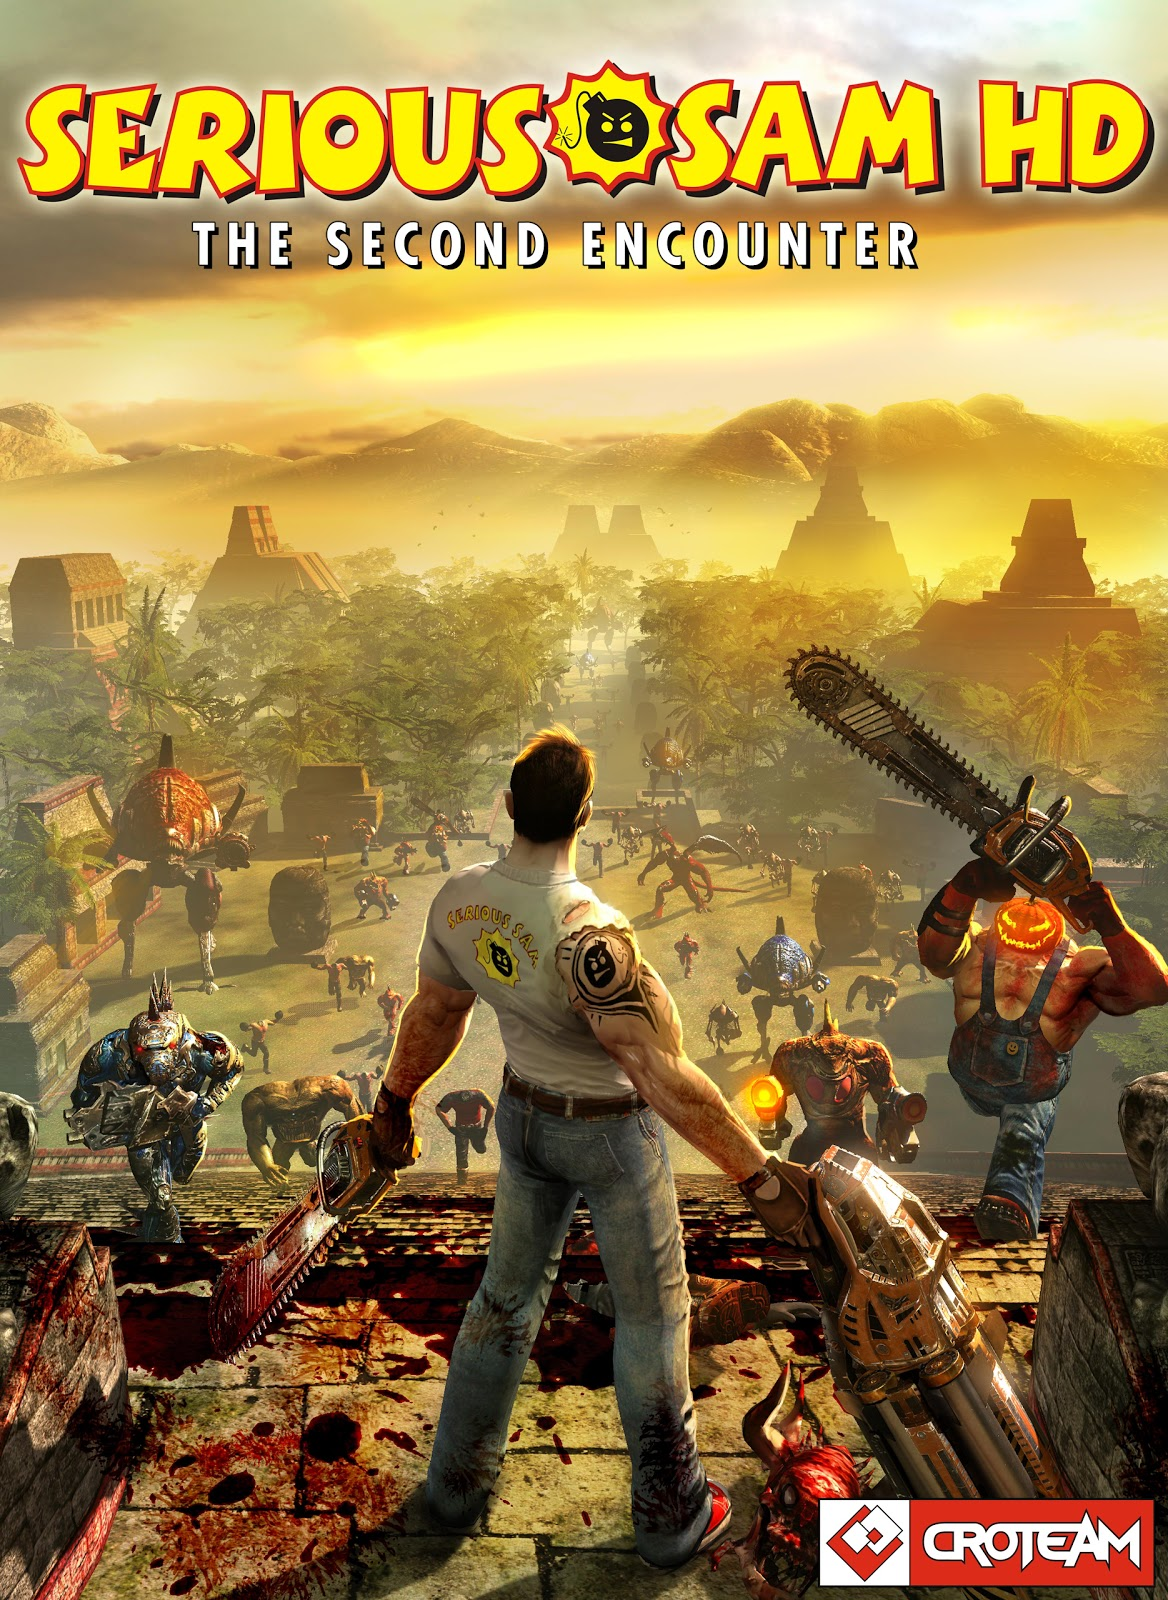 http://2.bp.blogspot.com/_a1LrcVVRyB0/TRBsXVb6r9I/AAAAAAAACtA/gncEqhd02Xc/s1600/Serious-Sam-HD-The-Second-Encounter.jpg